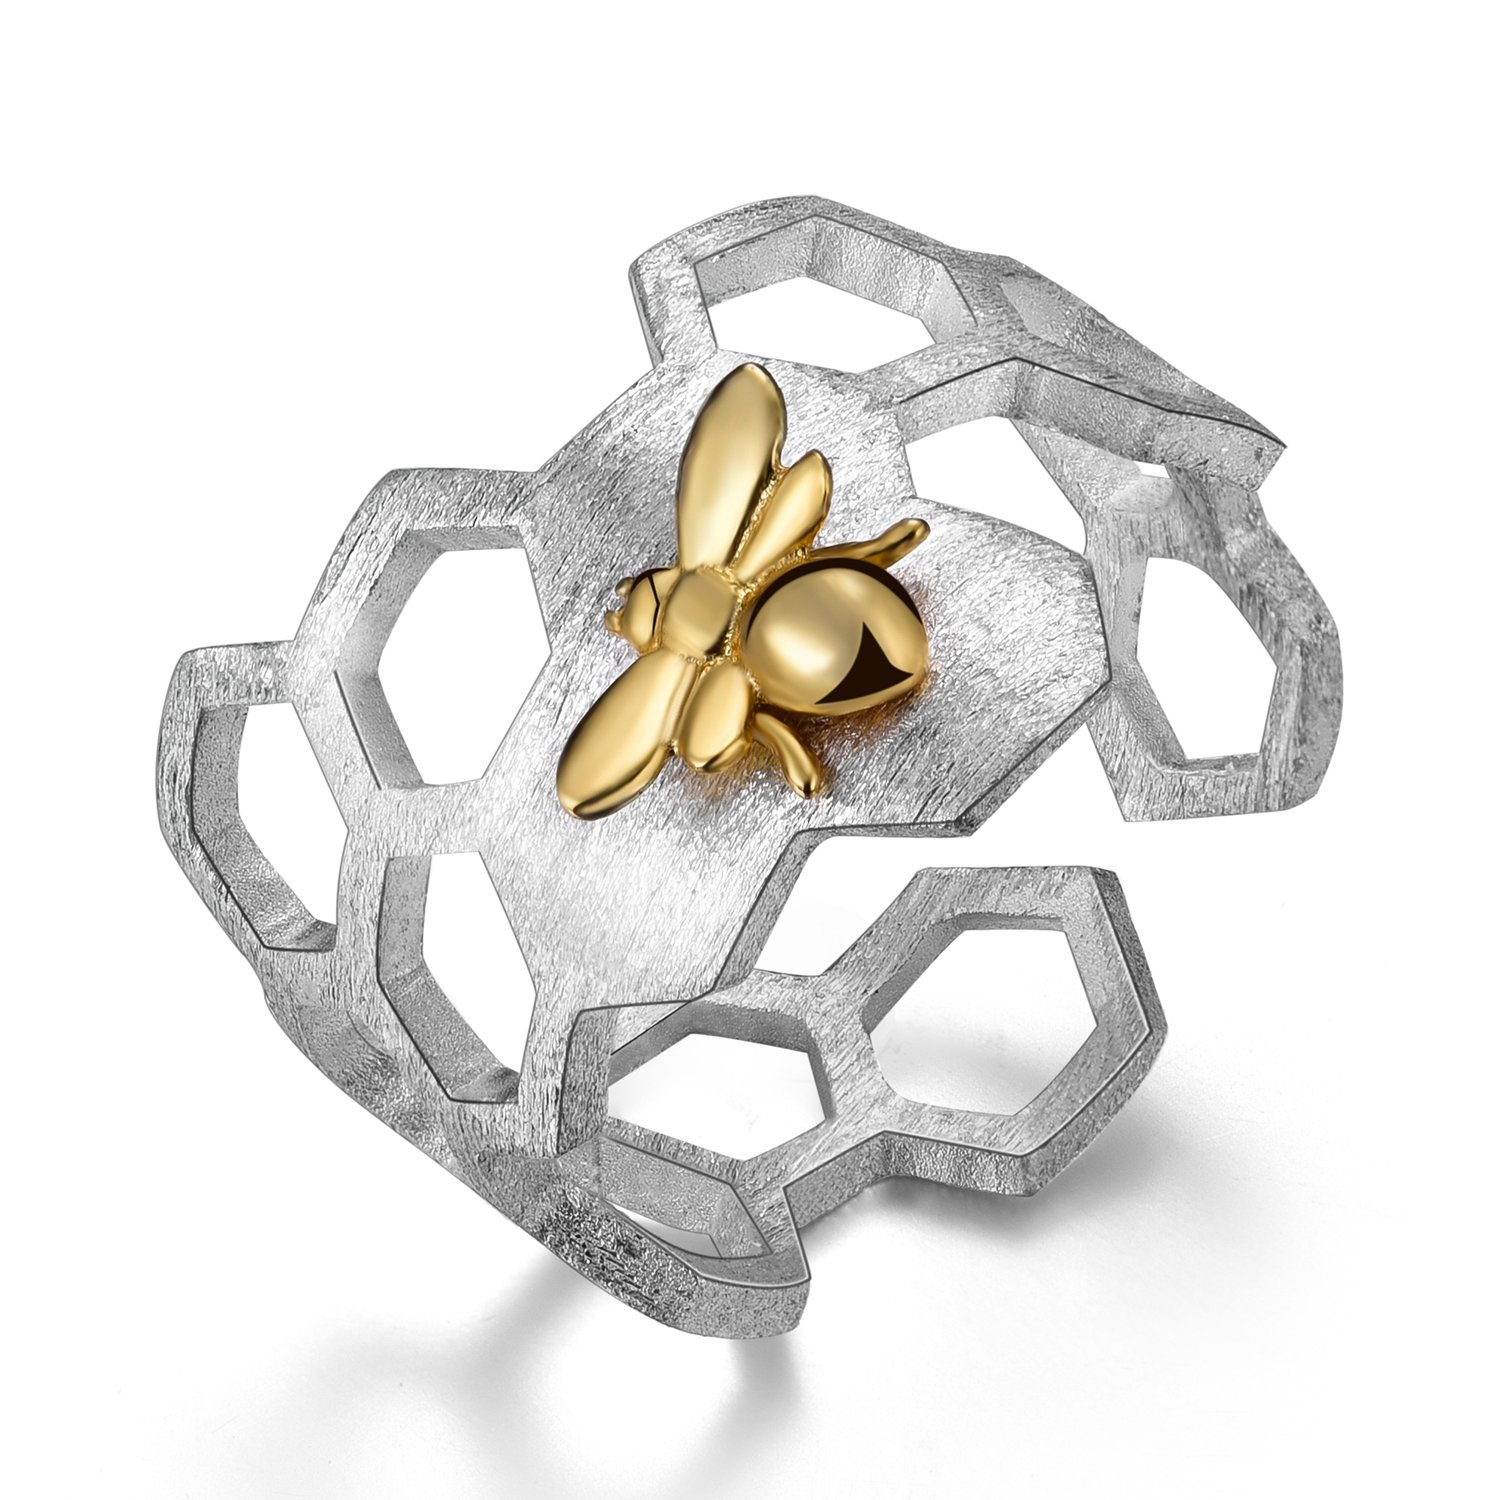 Lotus Fun S925 Sterling Silver Rings Handmade Unique Thumb Ring Natural Open Honeycomb Bee Jewelry Gift for Women and Girls by Lotus Fun